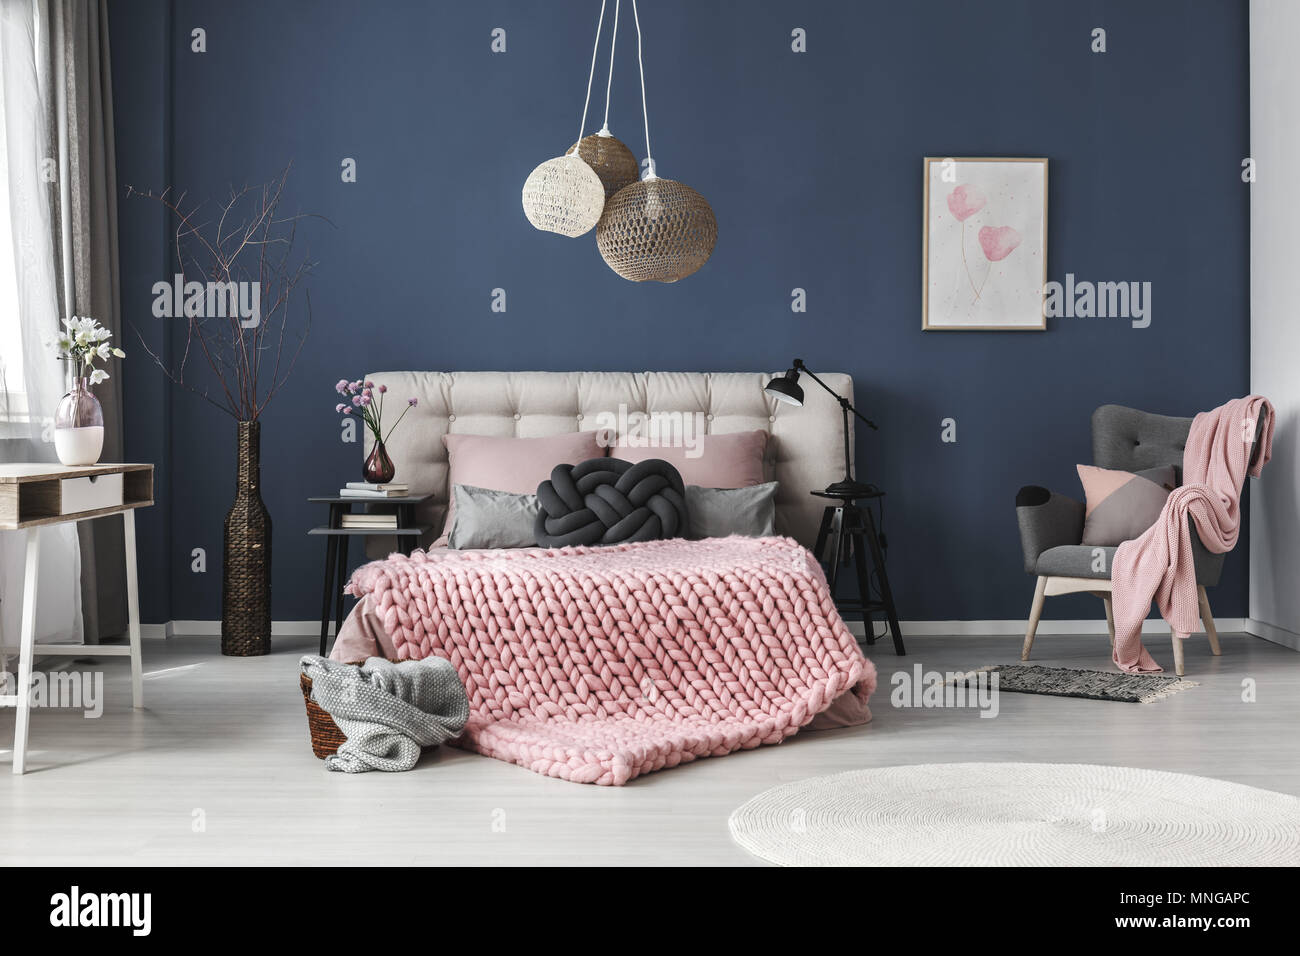 Bright Spacious Room With Cute Decorations And Poster